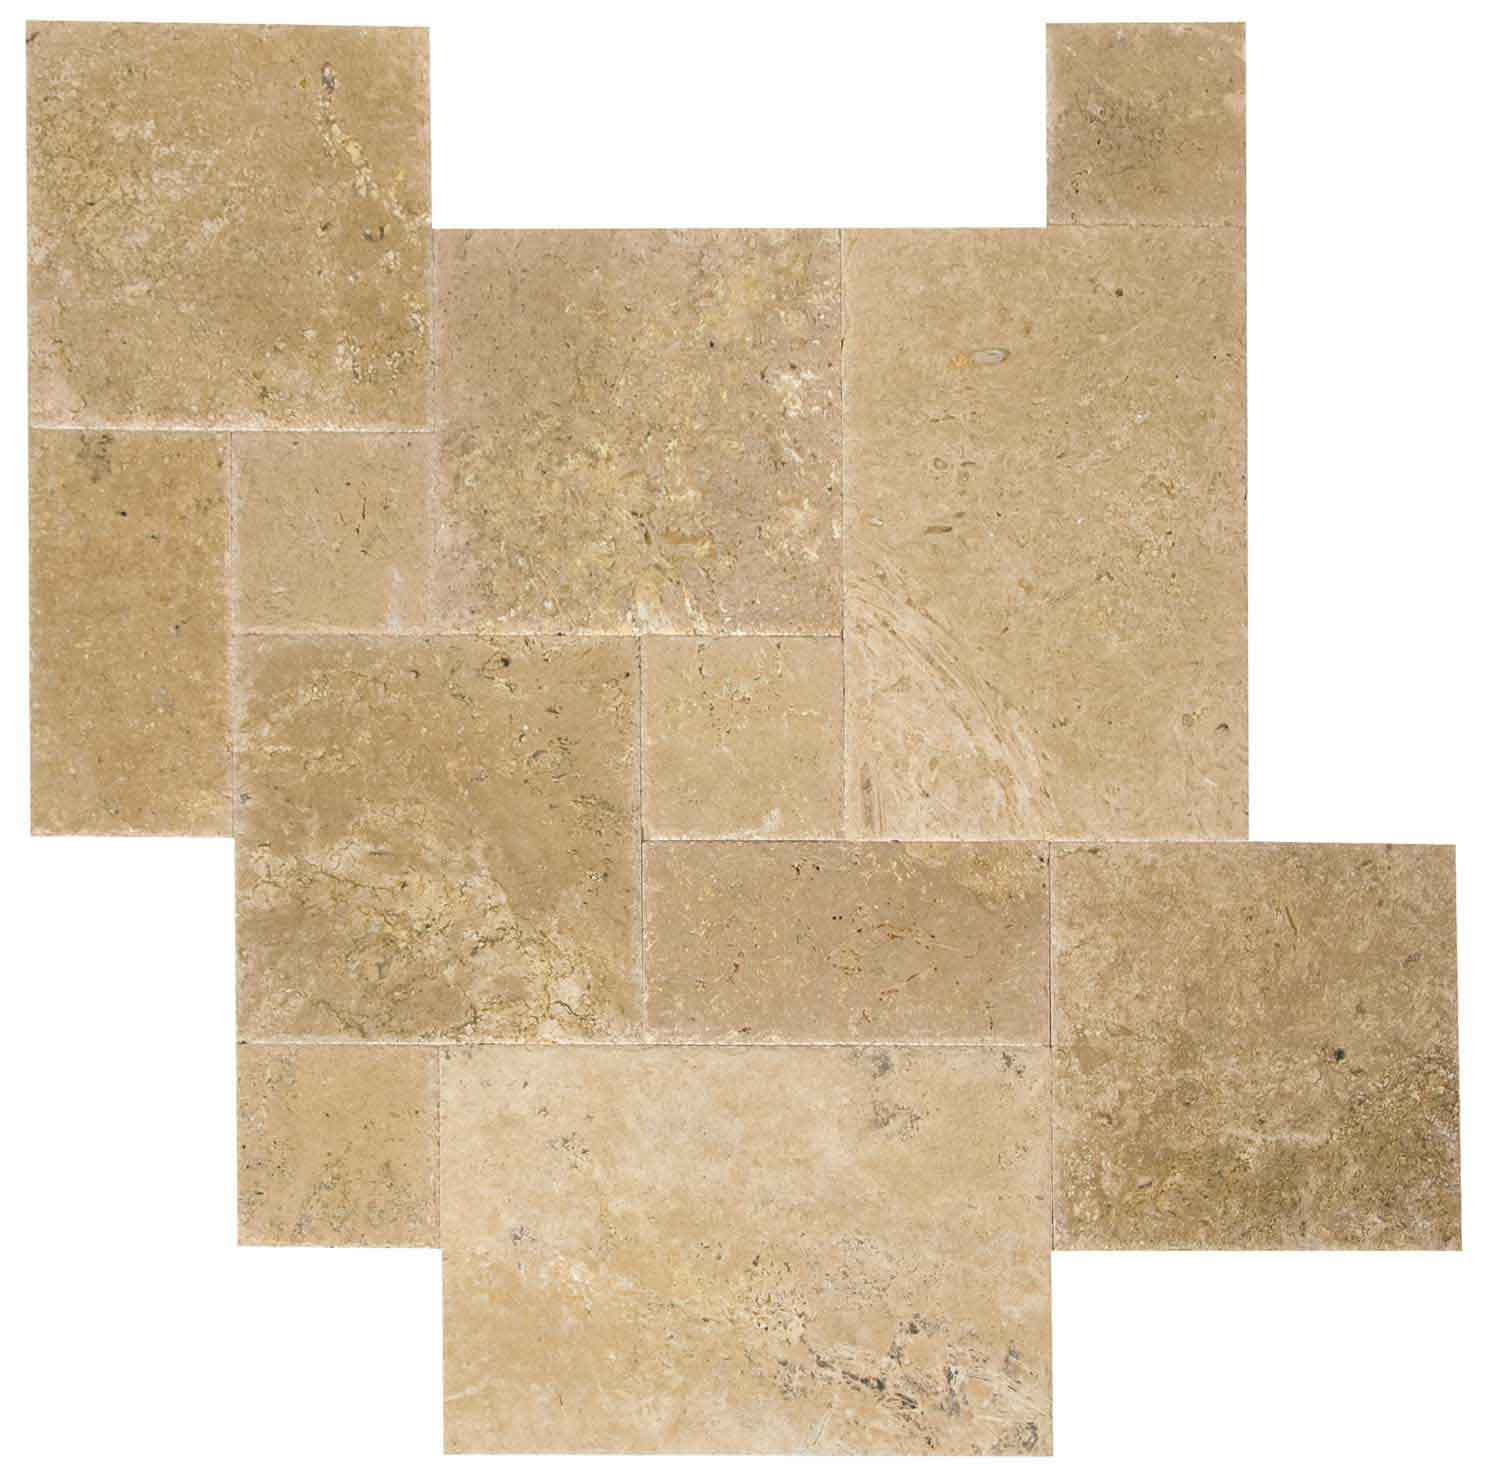 *SPECIAL* (Until 04/30/14) French Pattern Brushed & Chiseled Walnut Travertine Tile